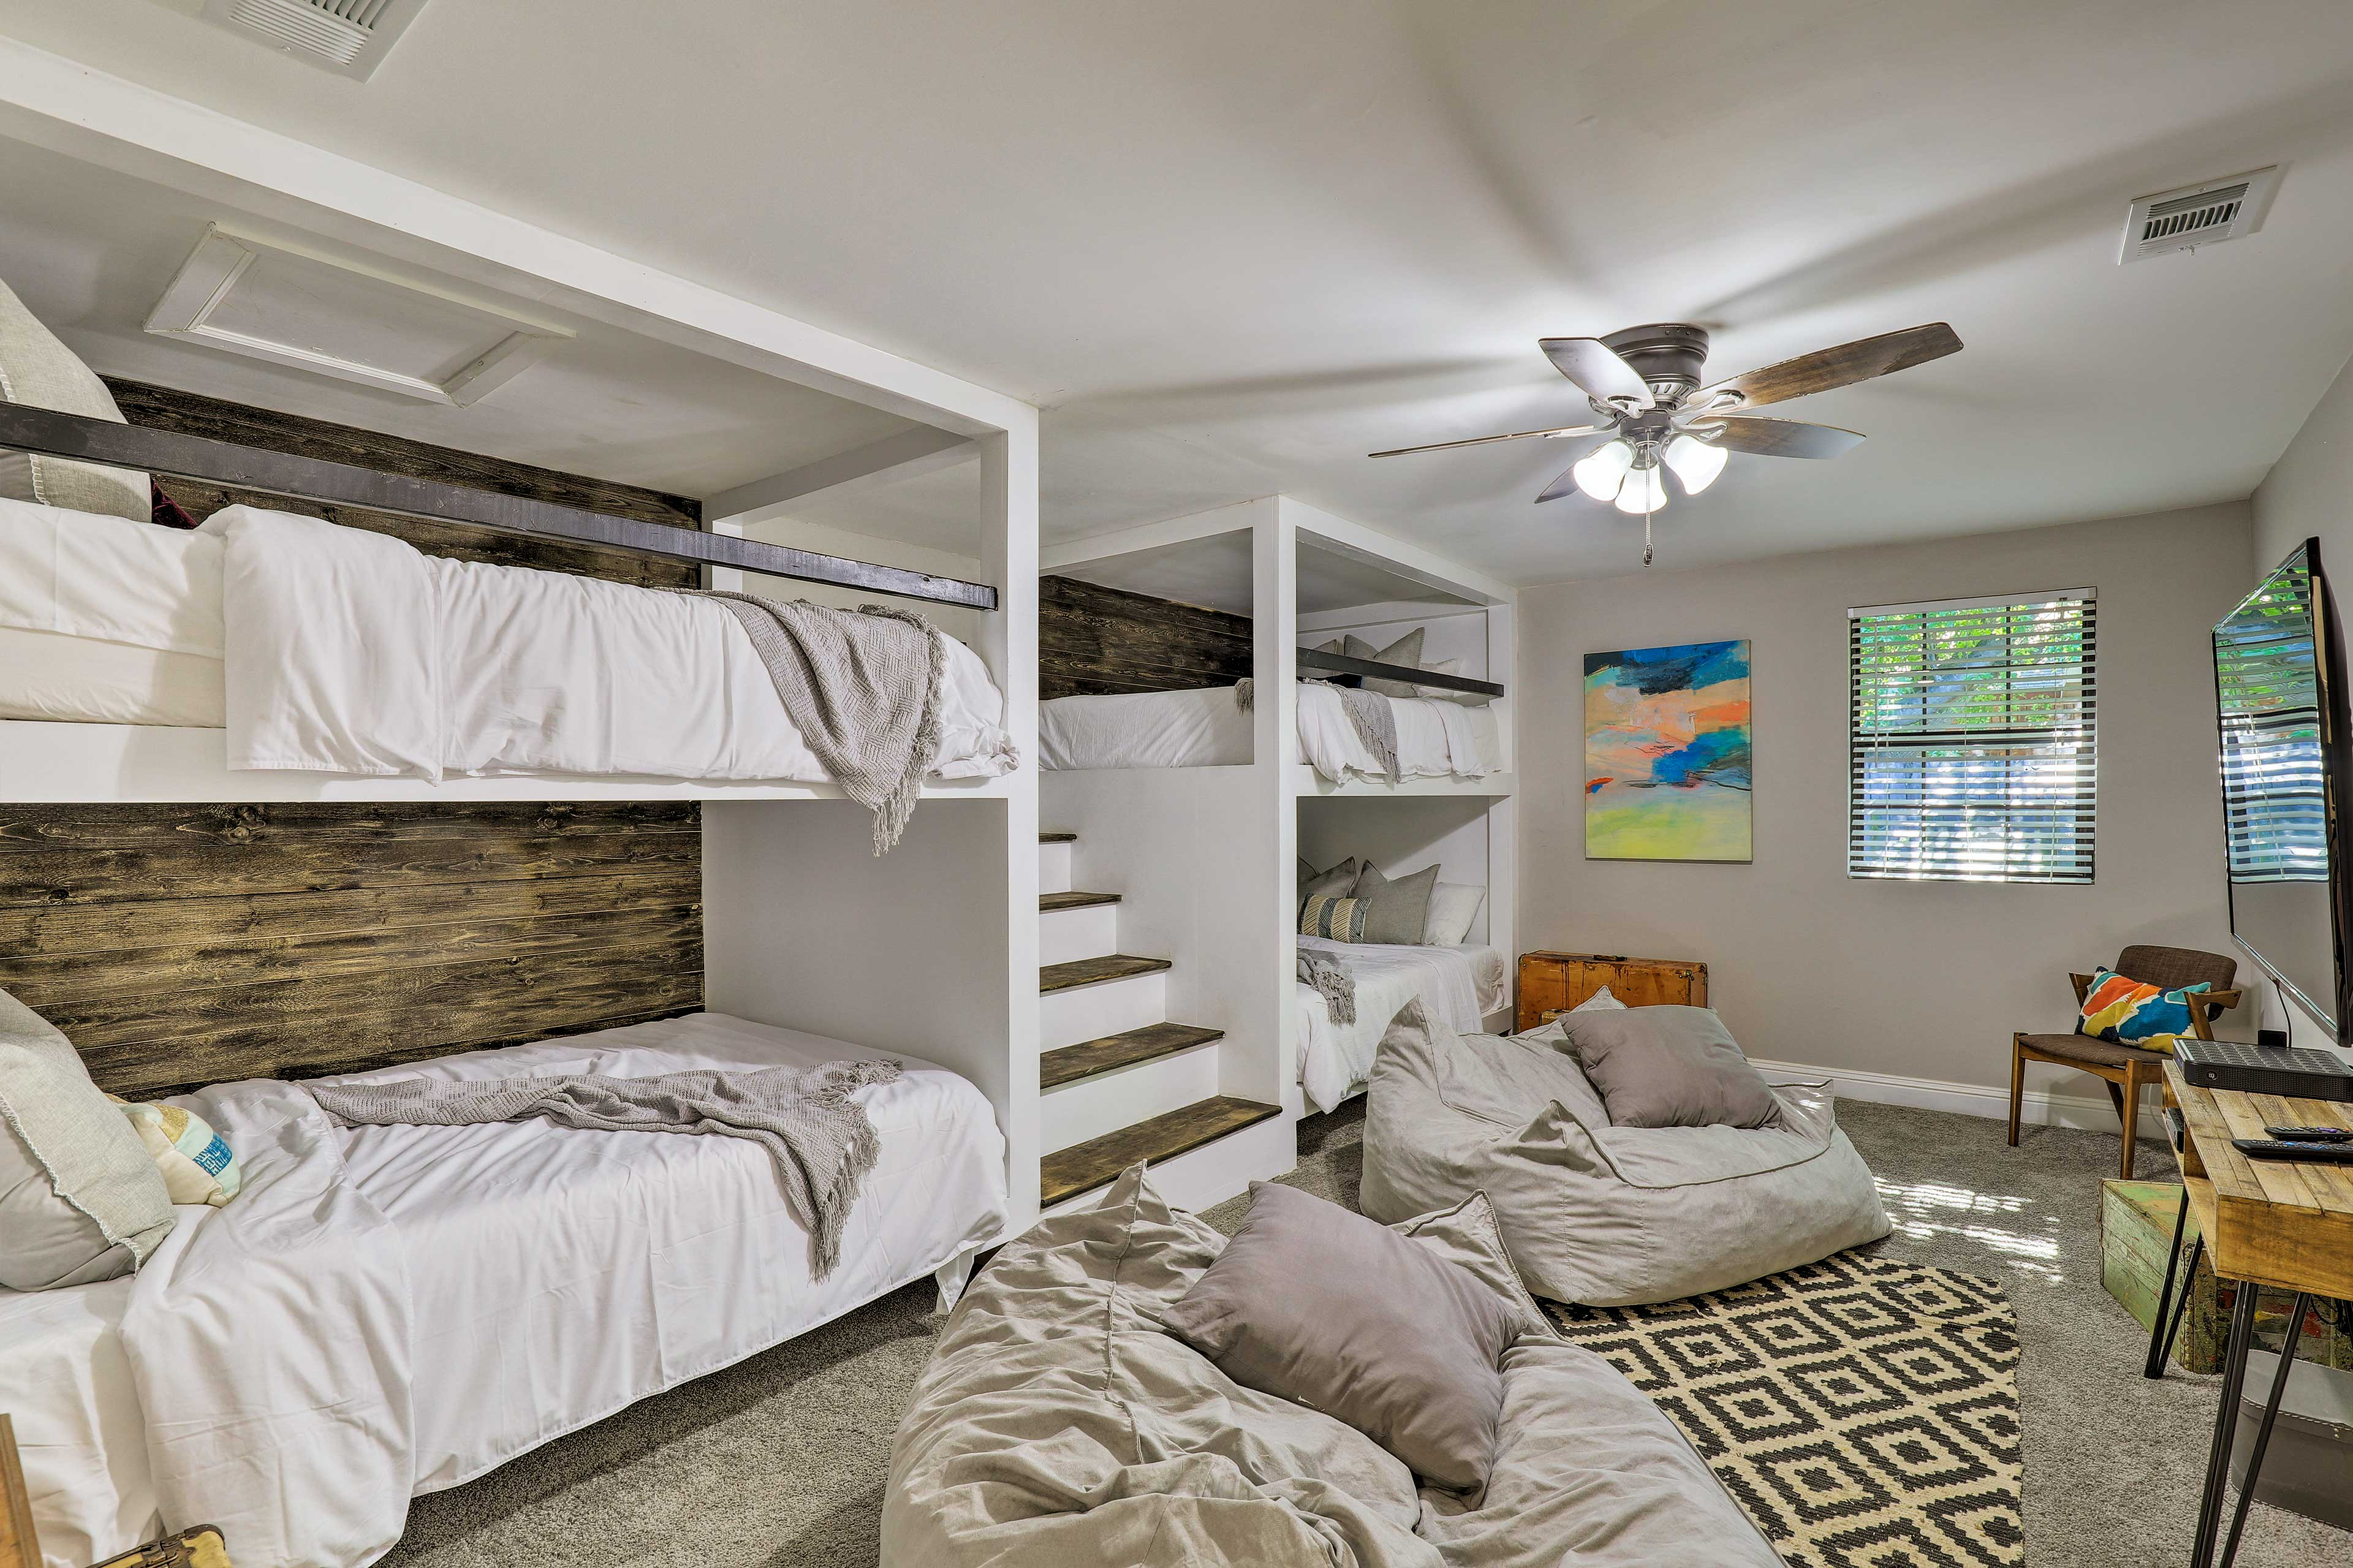 In the game room, you'll find 4 queen beds.